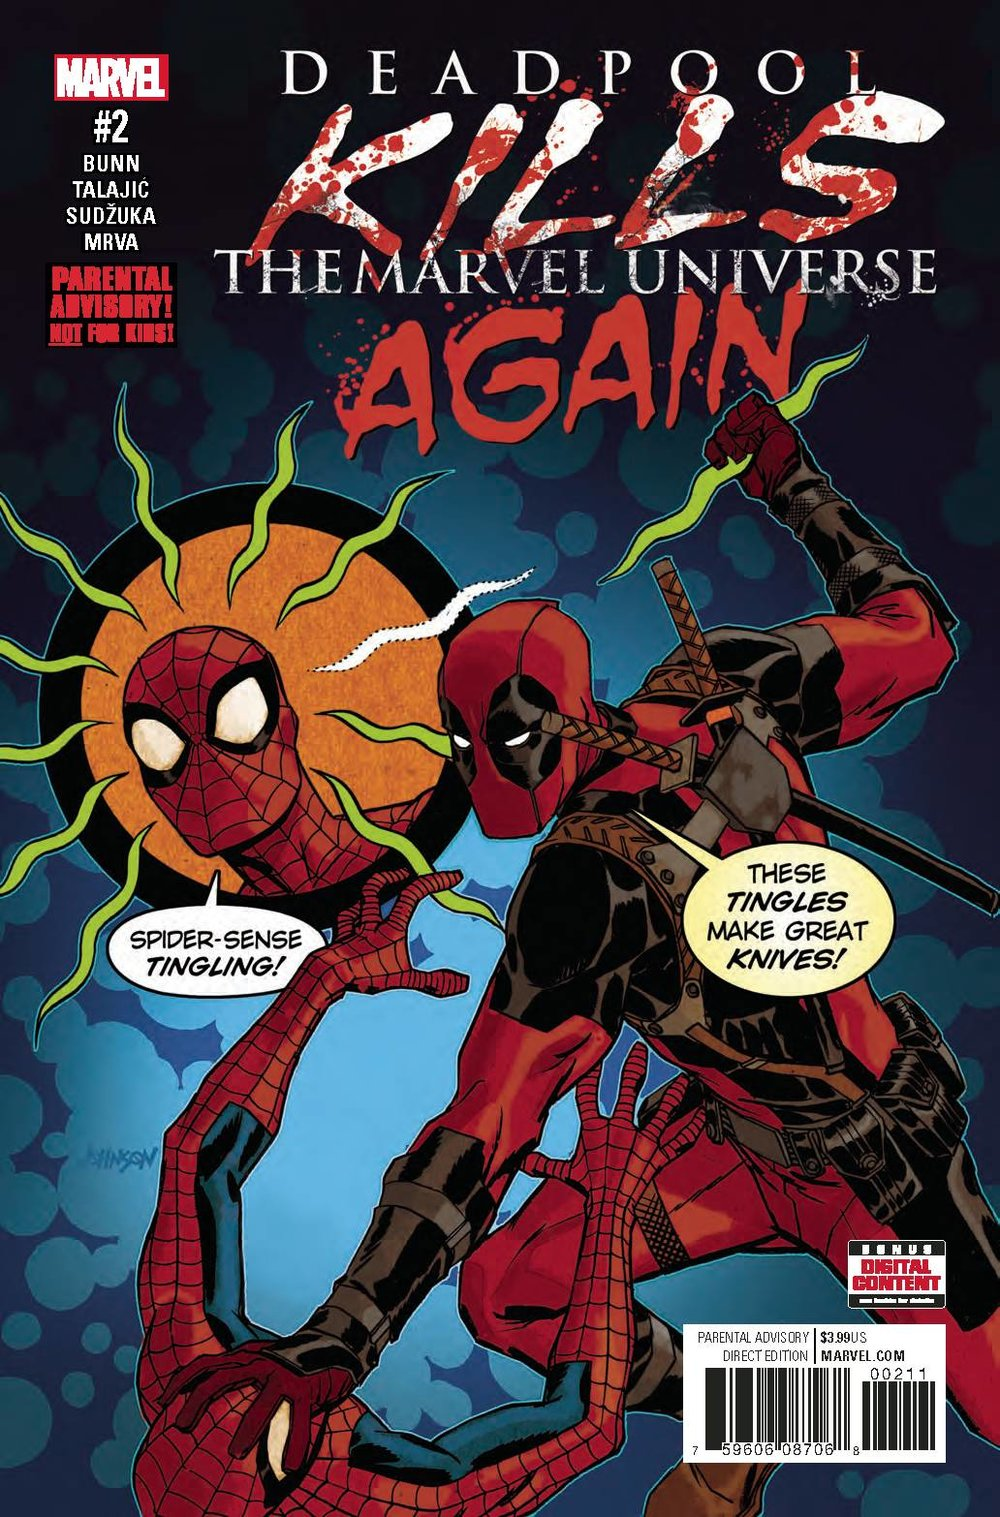 DEADPOOL KILLS MARVEL UNIVERSE AGAIN #2 (OF 5) - MARVEL COMICSWritten by Cullen BunnArt by Dalibor TalajicRemember the time Deadpool went a little TOO crazy and killed the entire Marvel Universe? Well, this isn't that. This is a DIFFERENT time. Writer Cullen Bunn and artist Dalibor Talajic (A.K.A. the creators behind DEADPOOL KILLS THE MARVEL UNIVERSE) have reunited for ANOTHER tale of Deadpool taking out all of your faves in the most horrific ways possible! It's gonna hurt him more than it hurts you...and you're gonna love it!